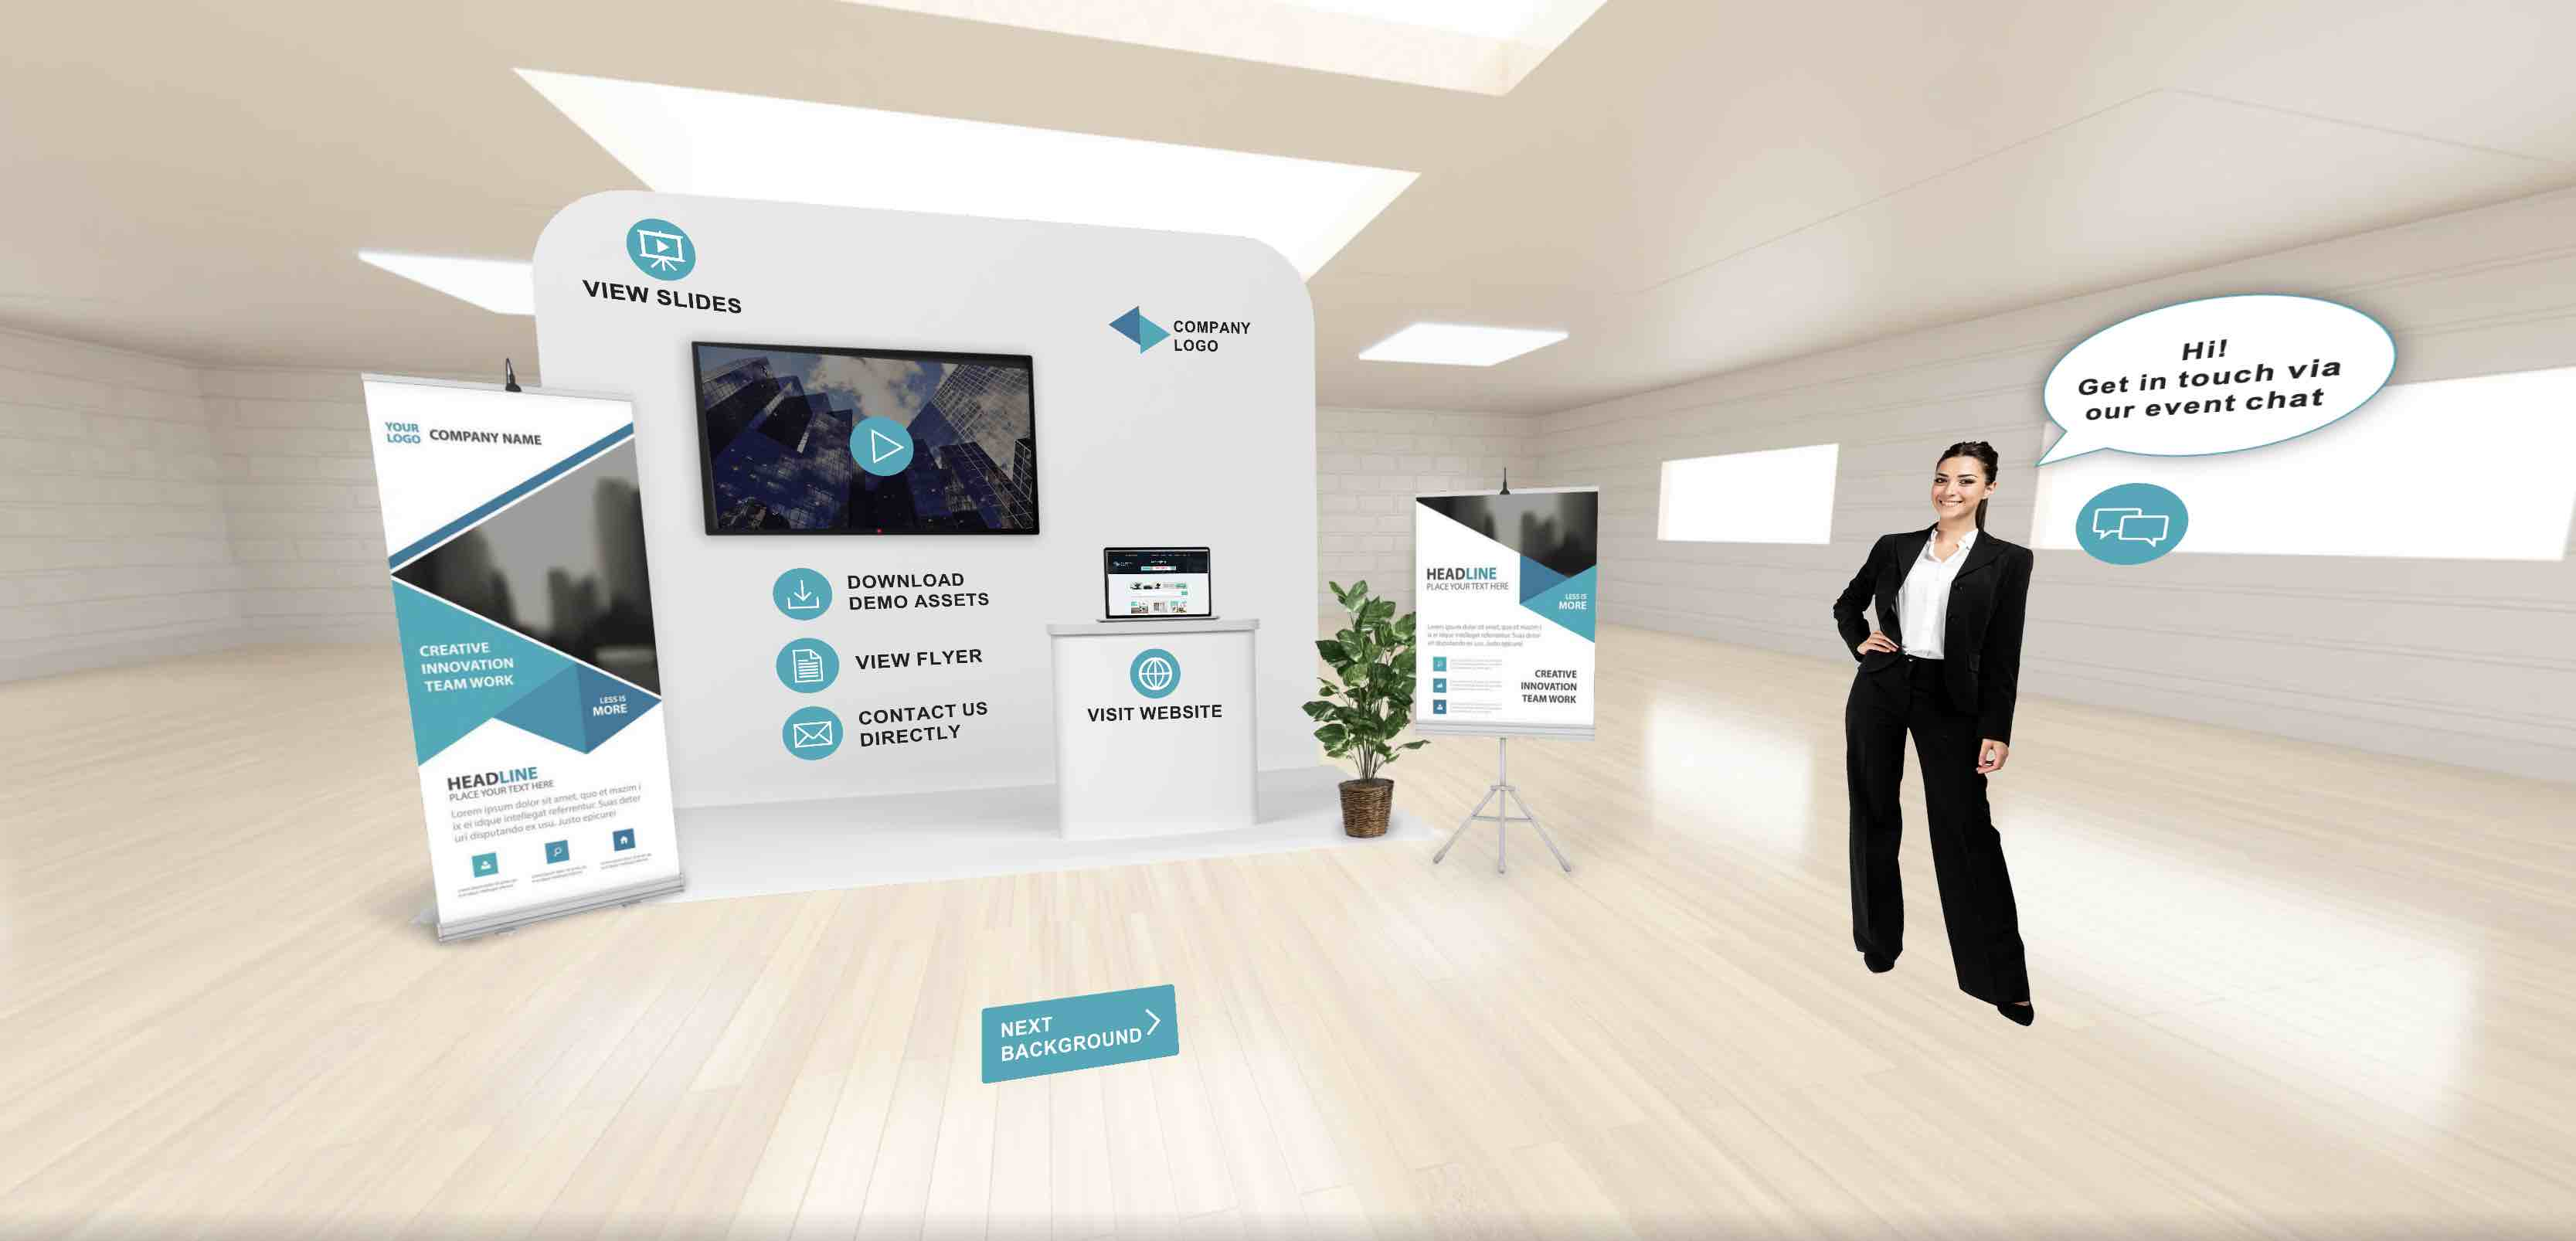 VRdirect Virtual Event Booth Template 1 1024x493